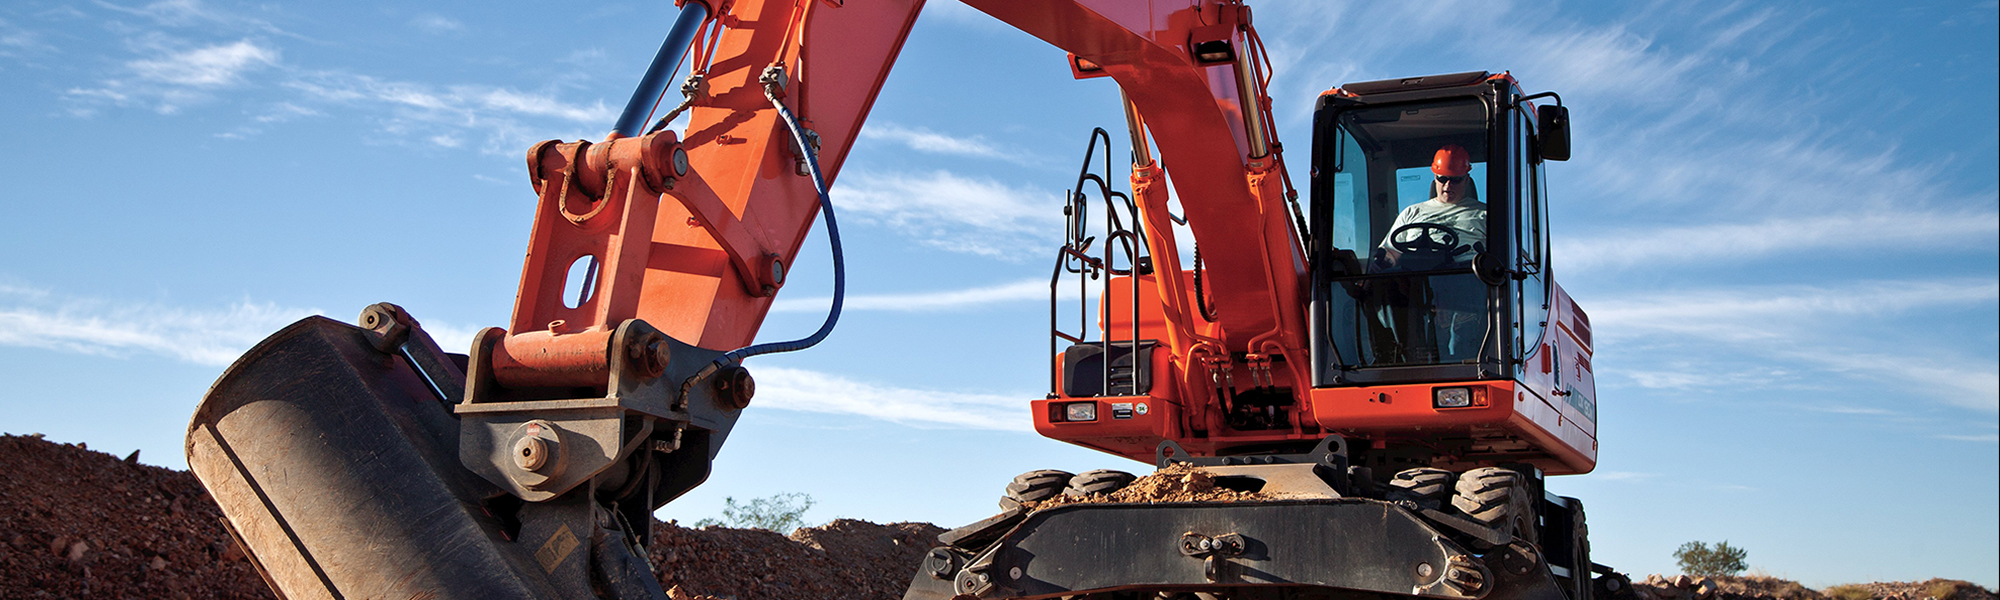 PNC Pre Owned Equipment | Pre Owned Construction Equipment